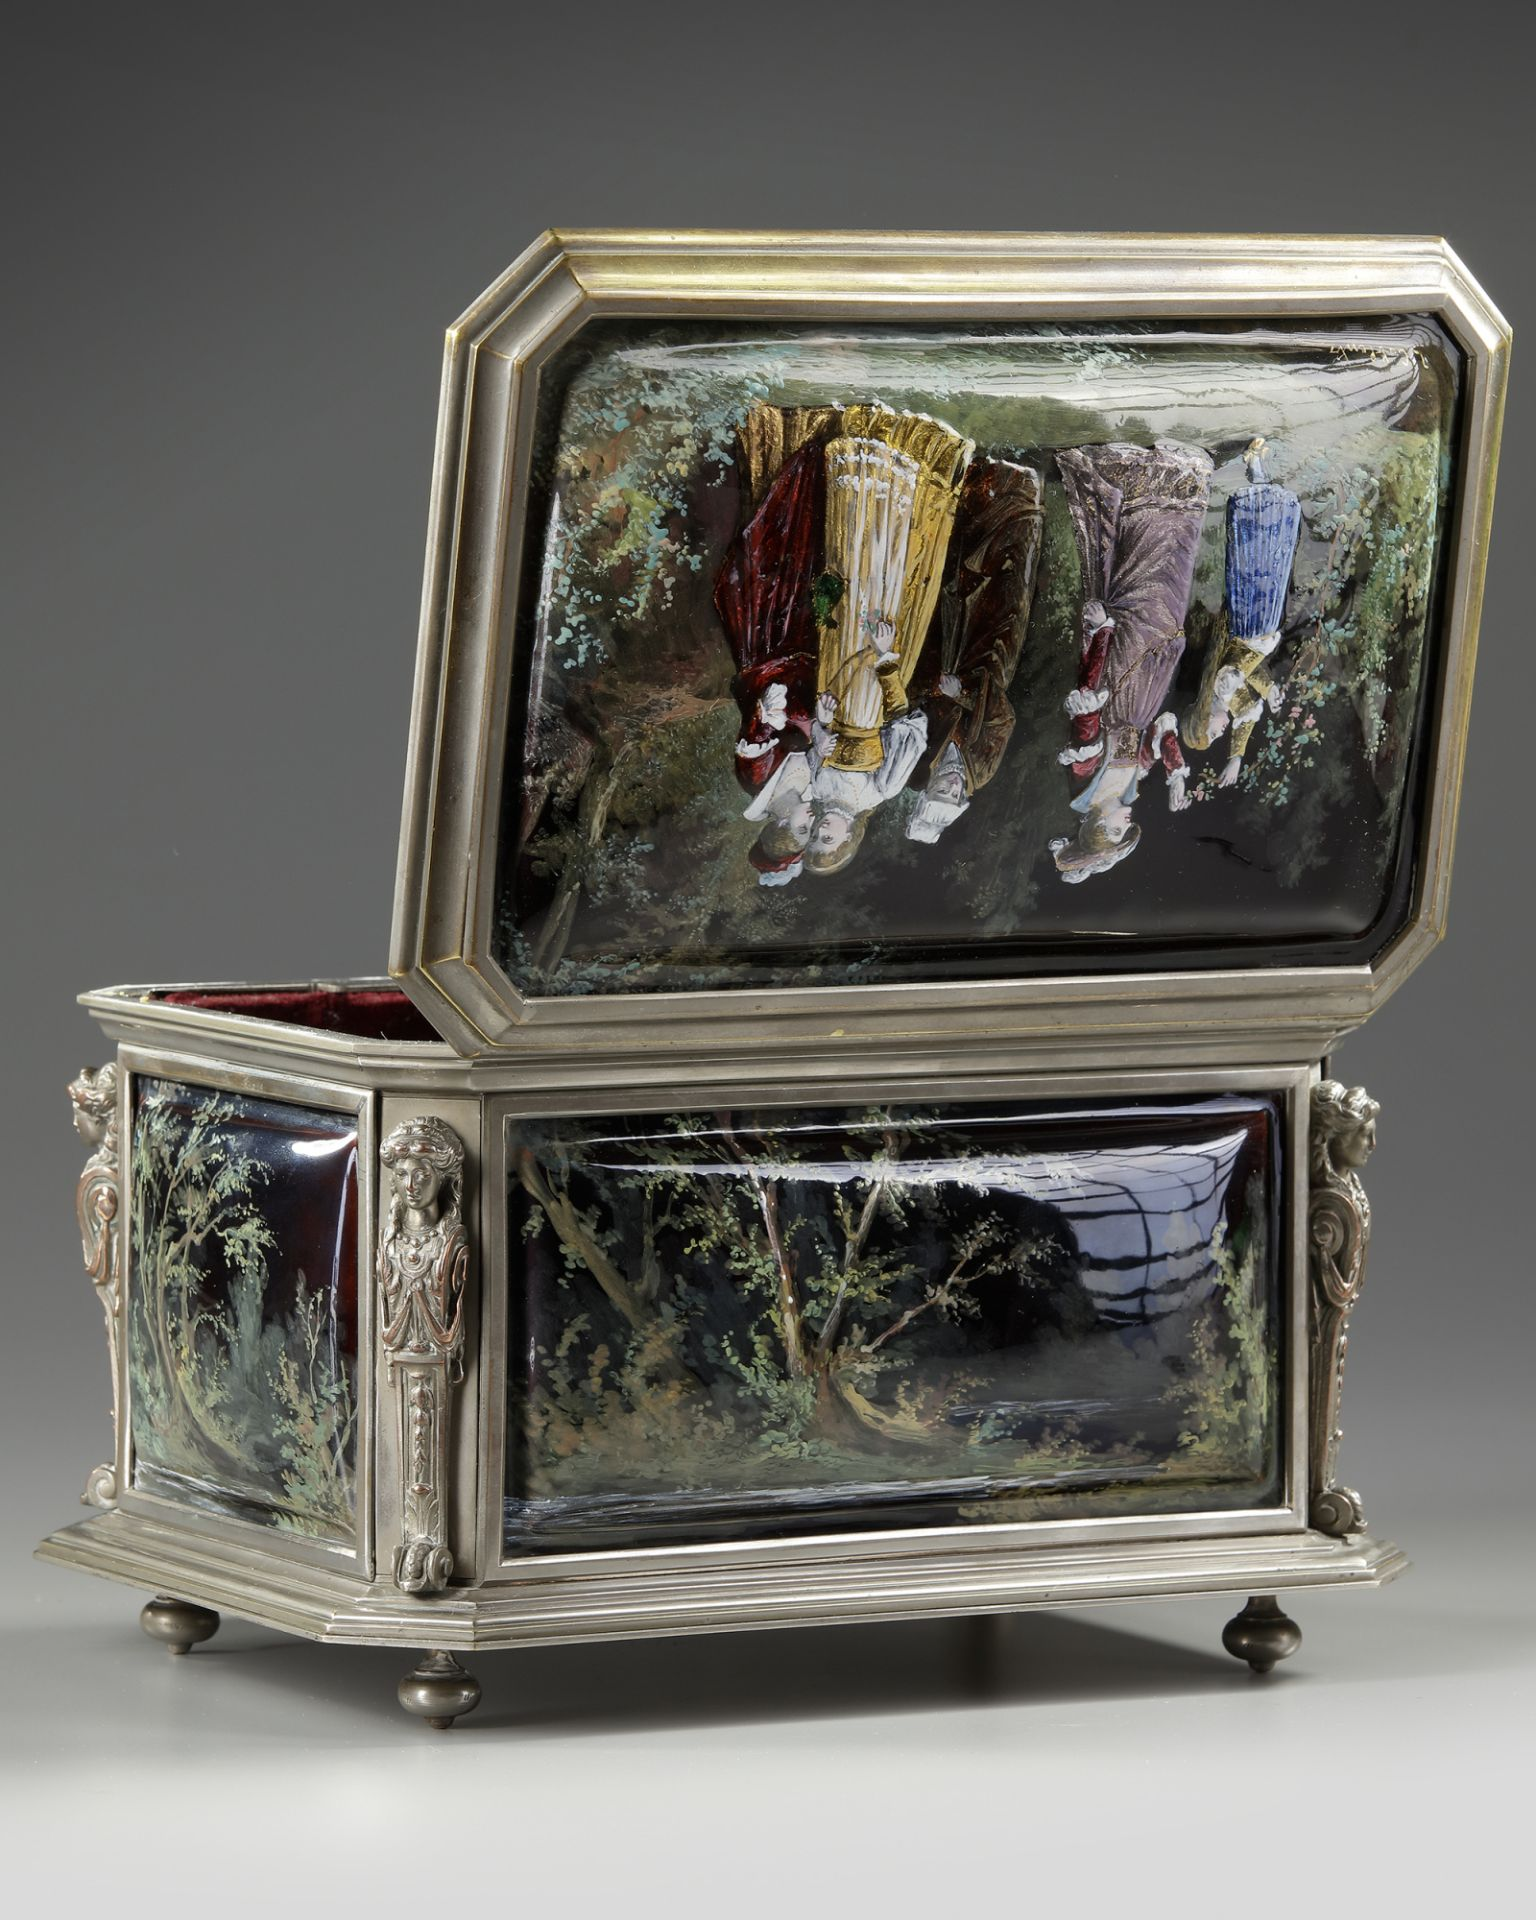 A JEWELRY BOX, FRANCE, LATE 19TH CENTURY - Image 3 of 4